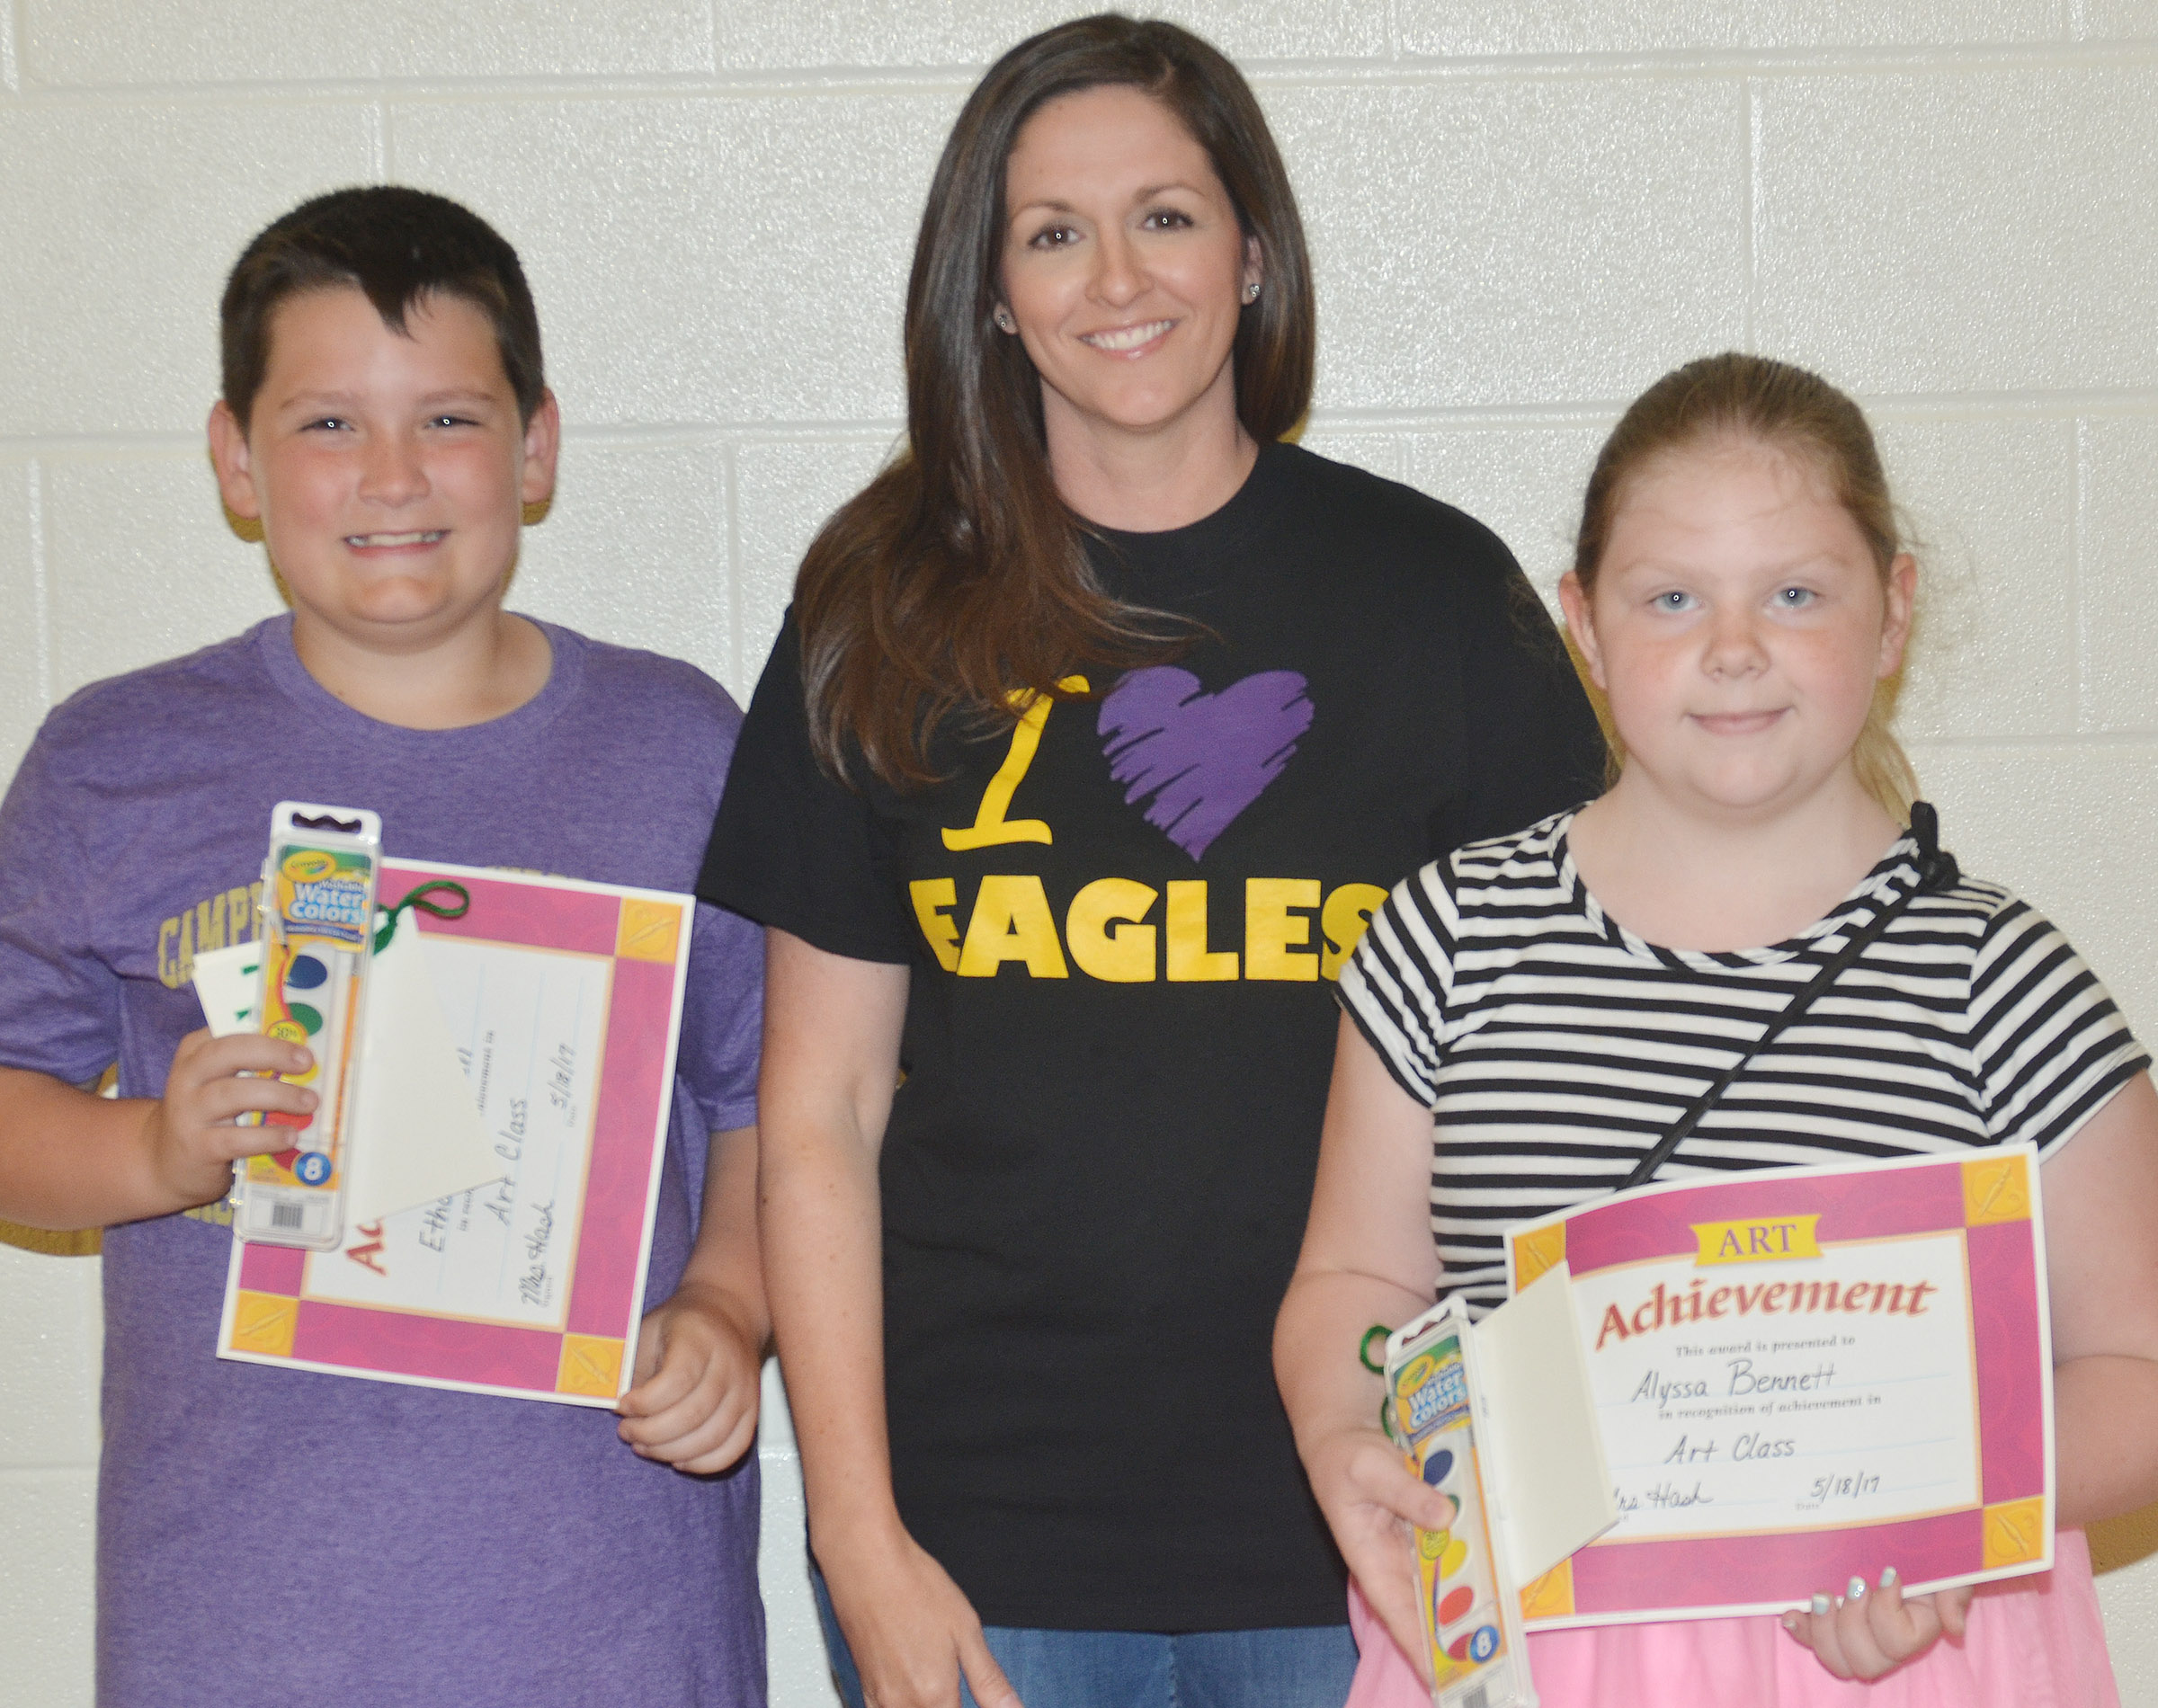 Art award winners, pictured with teacher Adrienne Hash, are Ethan Garrison and Alyssa Bennett.